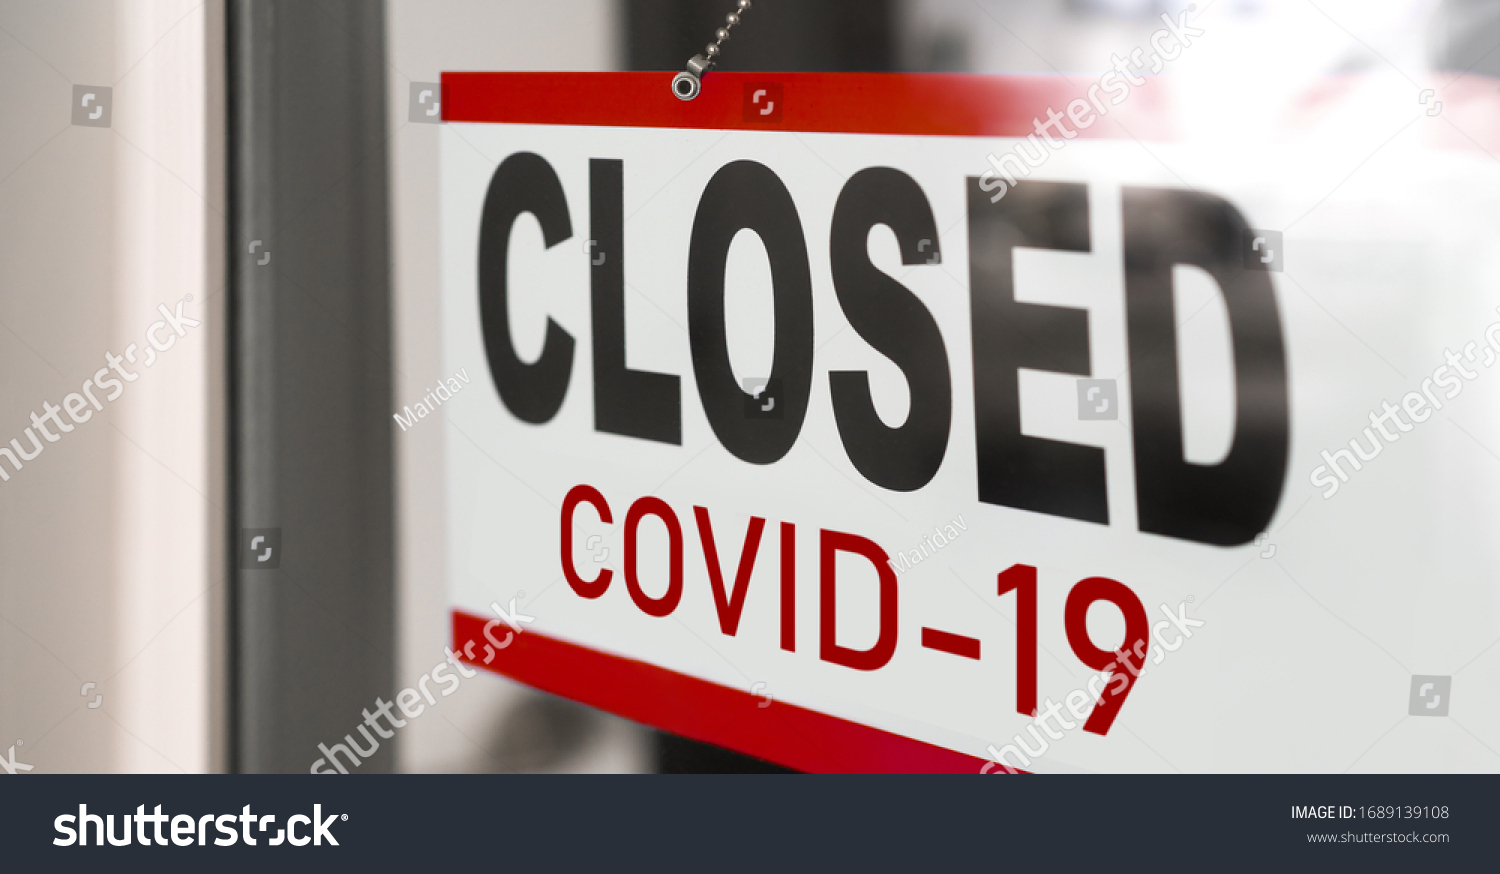 Closed businesses for COVID-19 pandemic outbreak, closure sign on retail store window banner background. Government shutdown of restaurants, shopping stores, non essential services. #1689139108